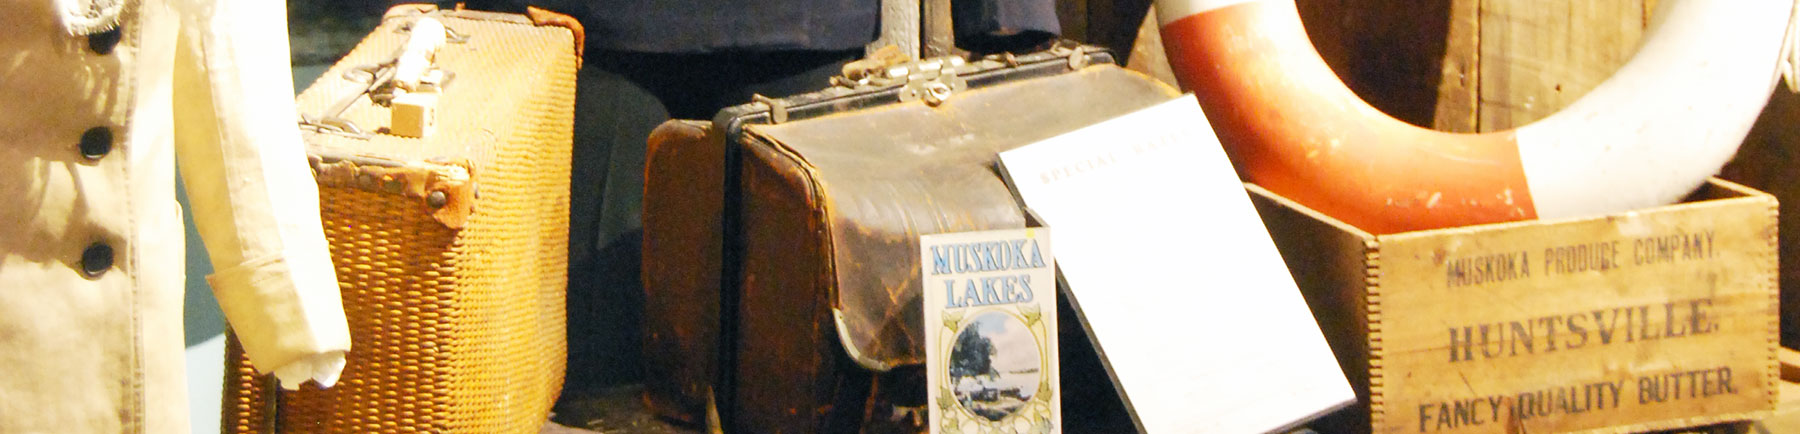 an inside look at the Muskoka Museum and artifacts